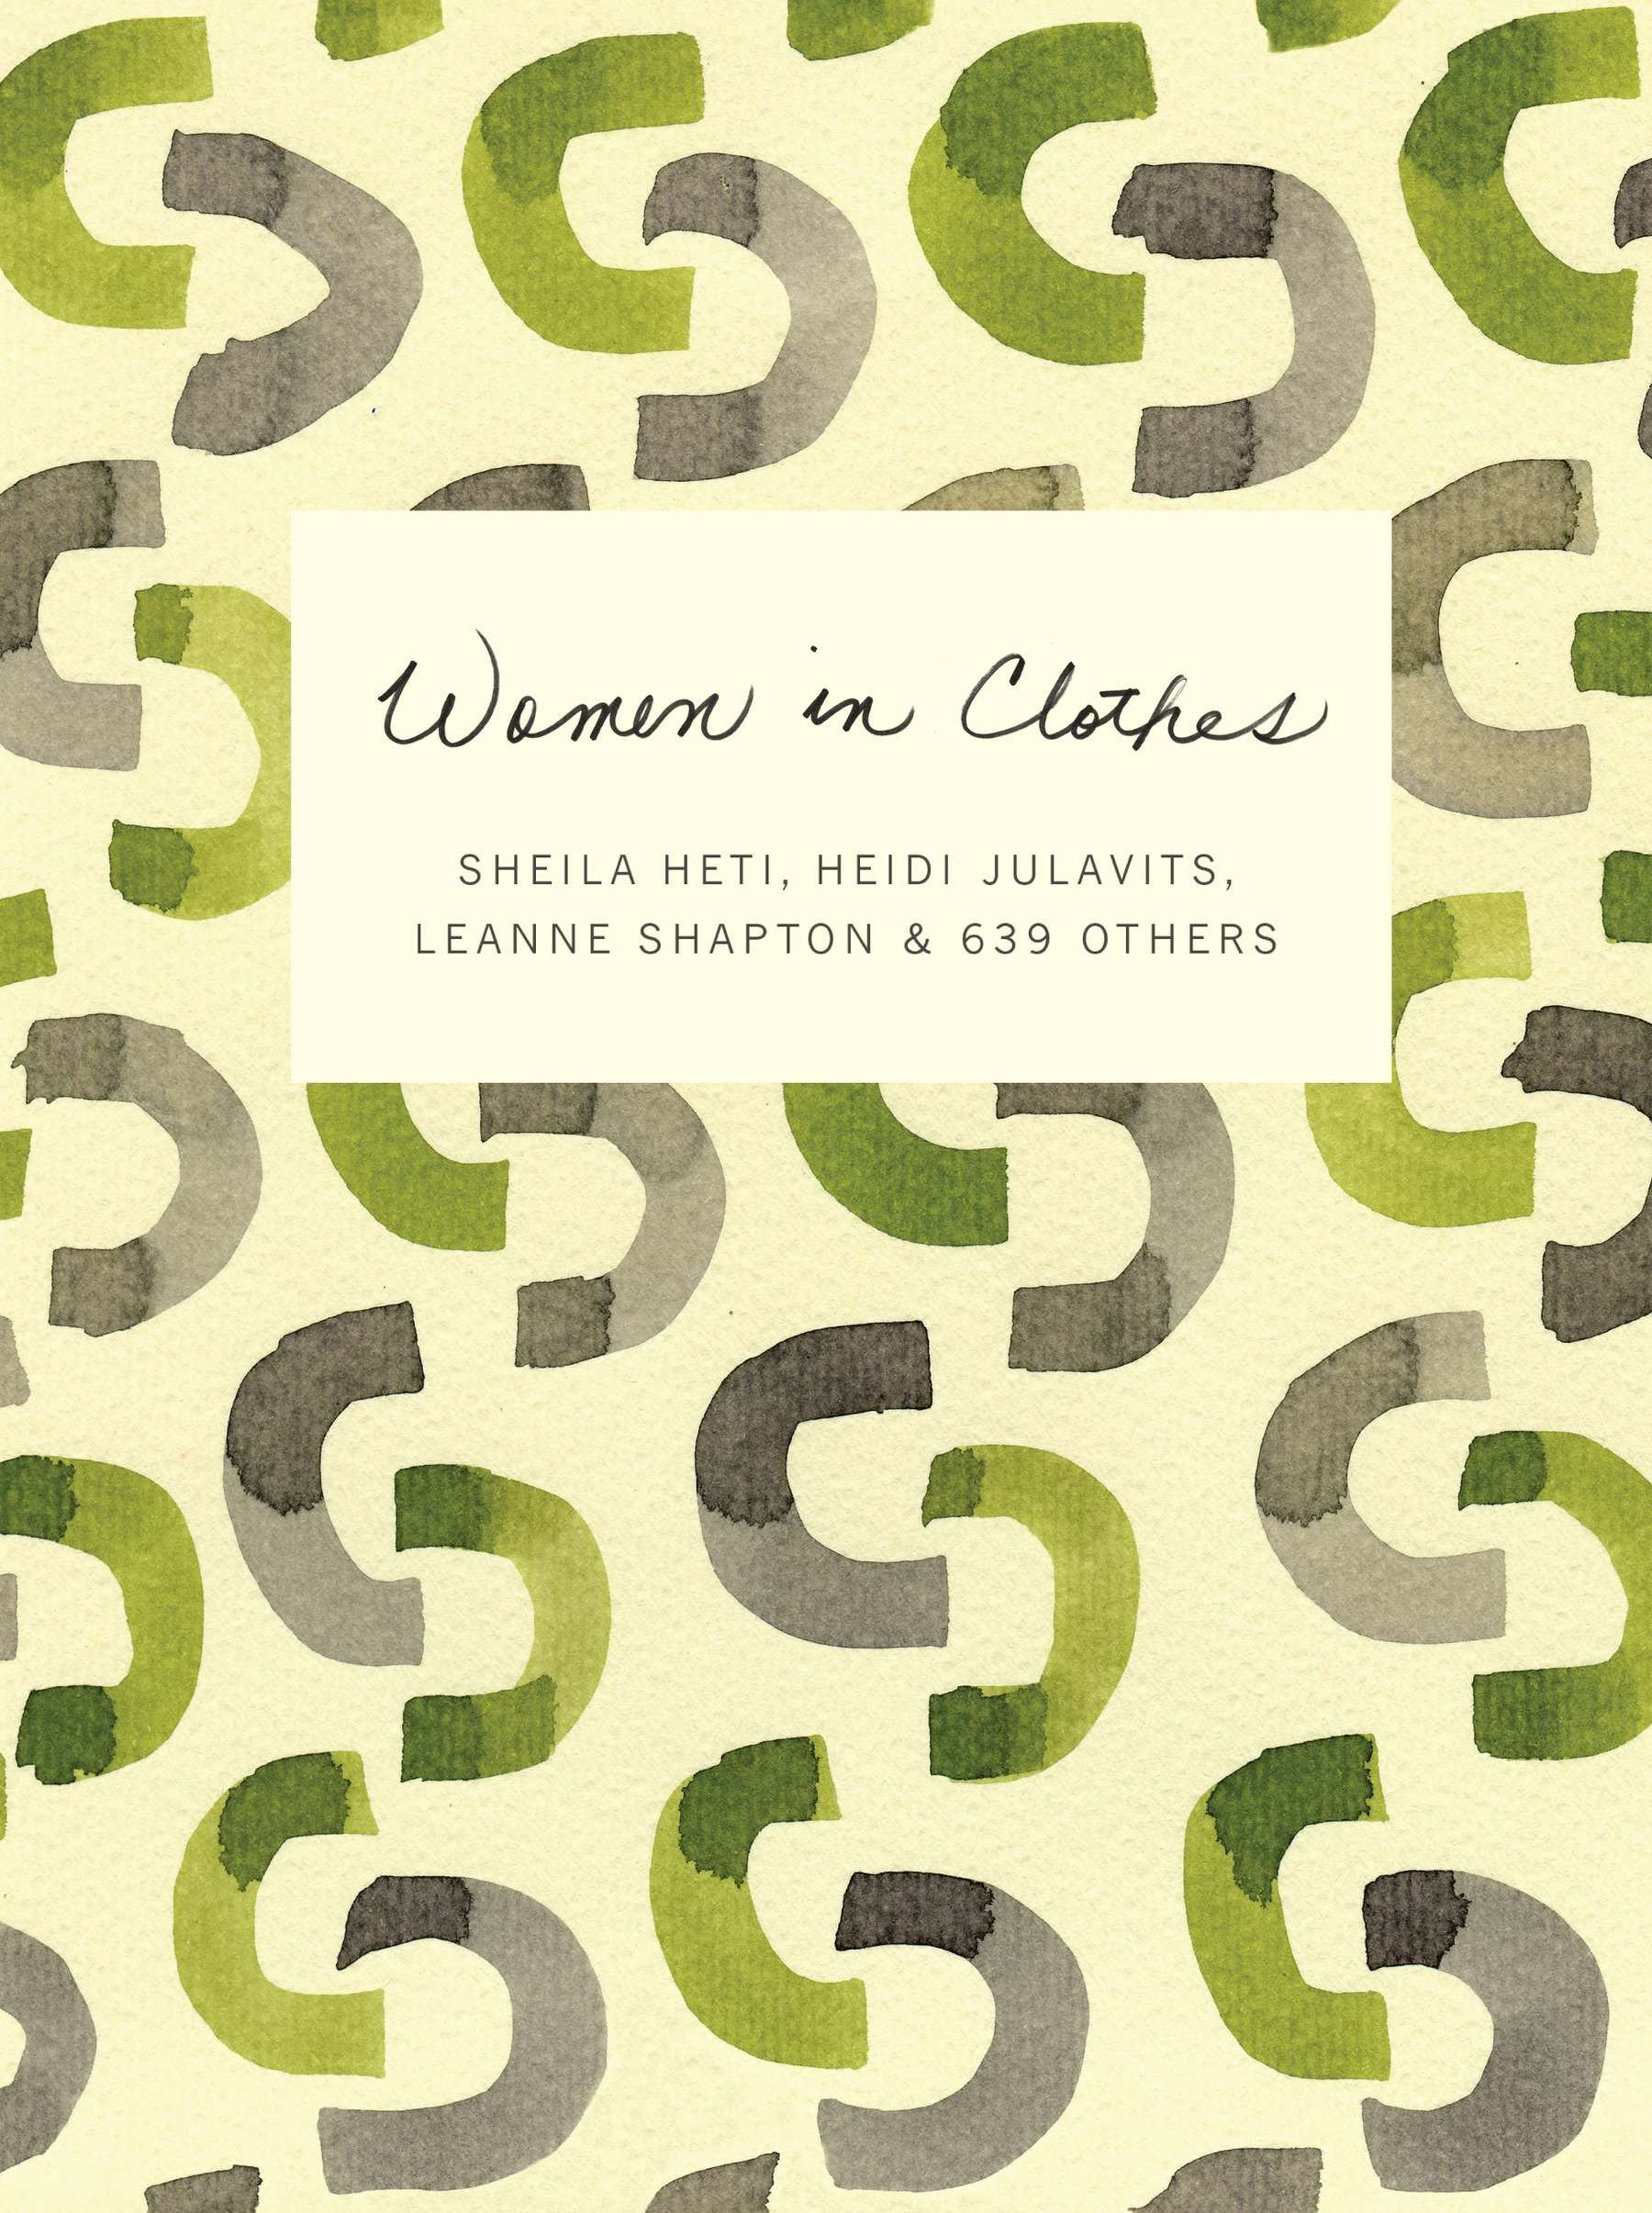 d6b722a750 Amazon.fr - Women in Clothes - Sheila Heti